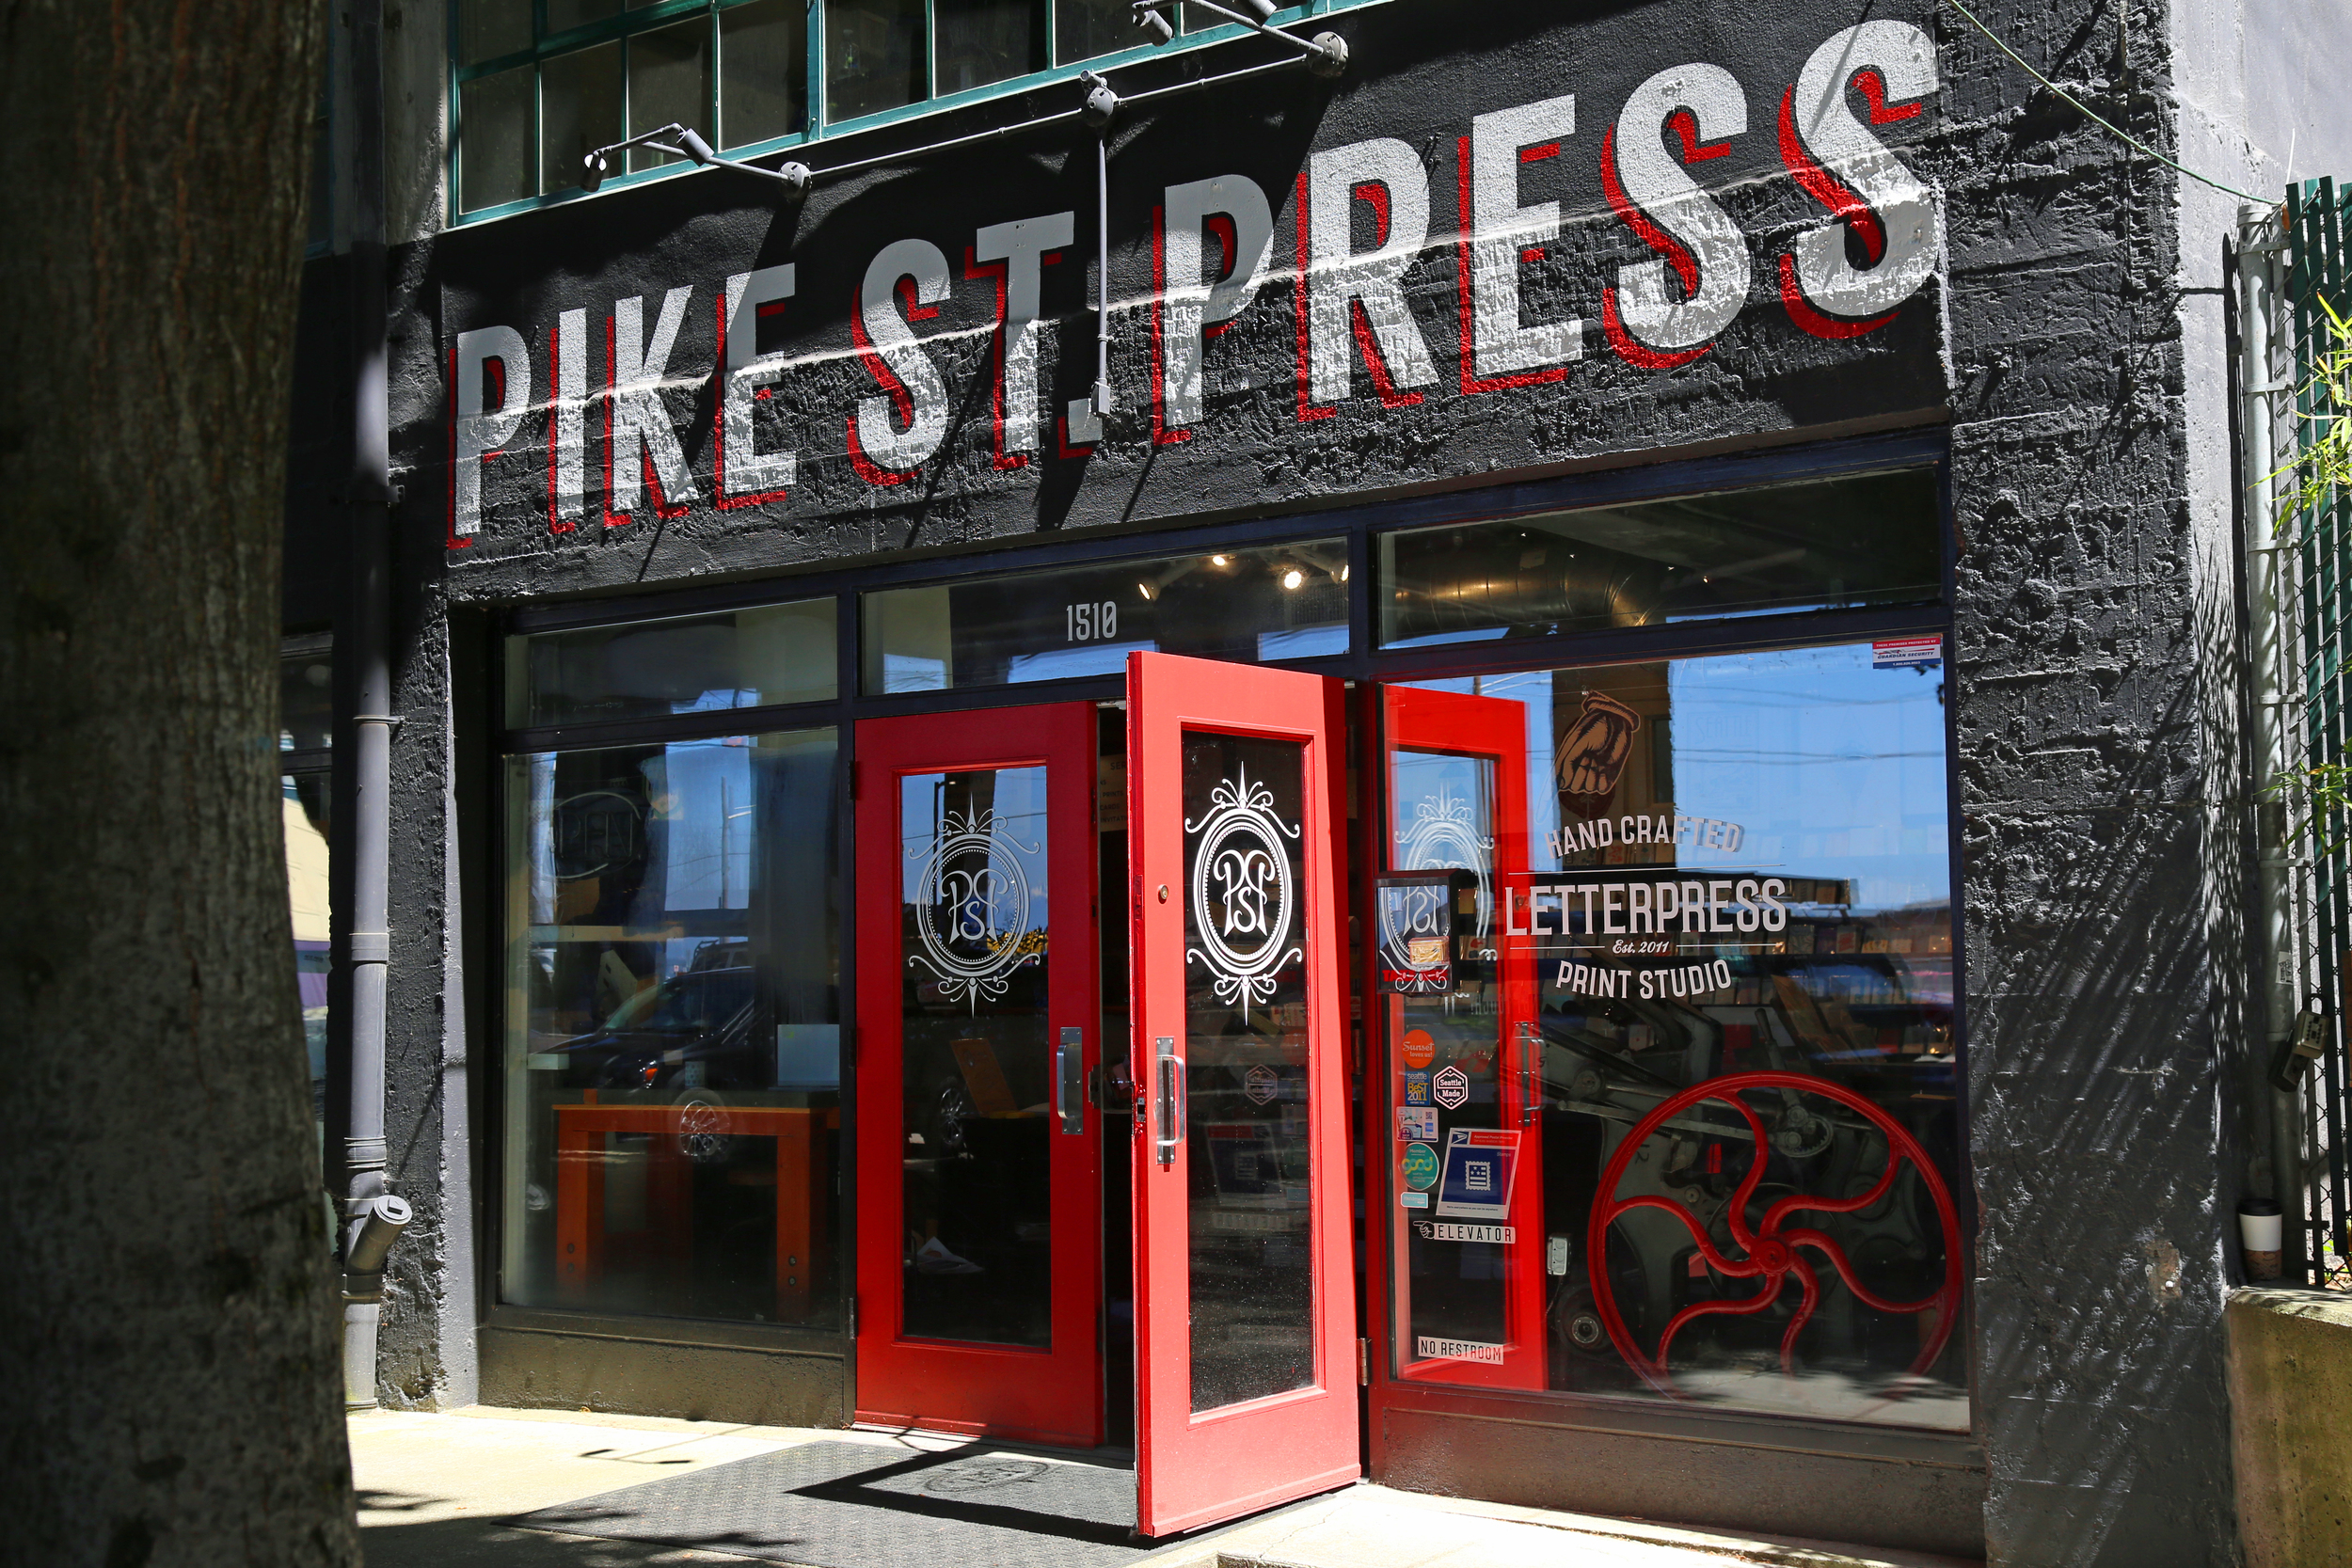 Pretty red doors at Pike Place Press.